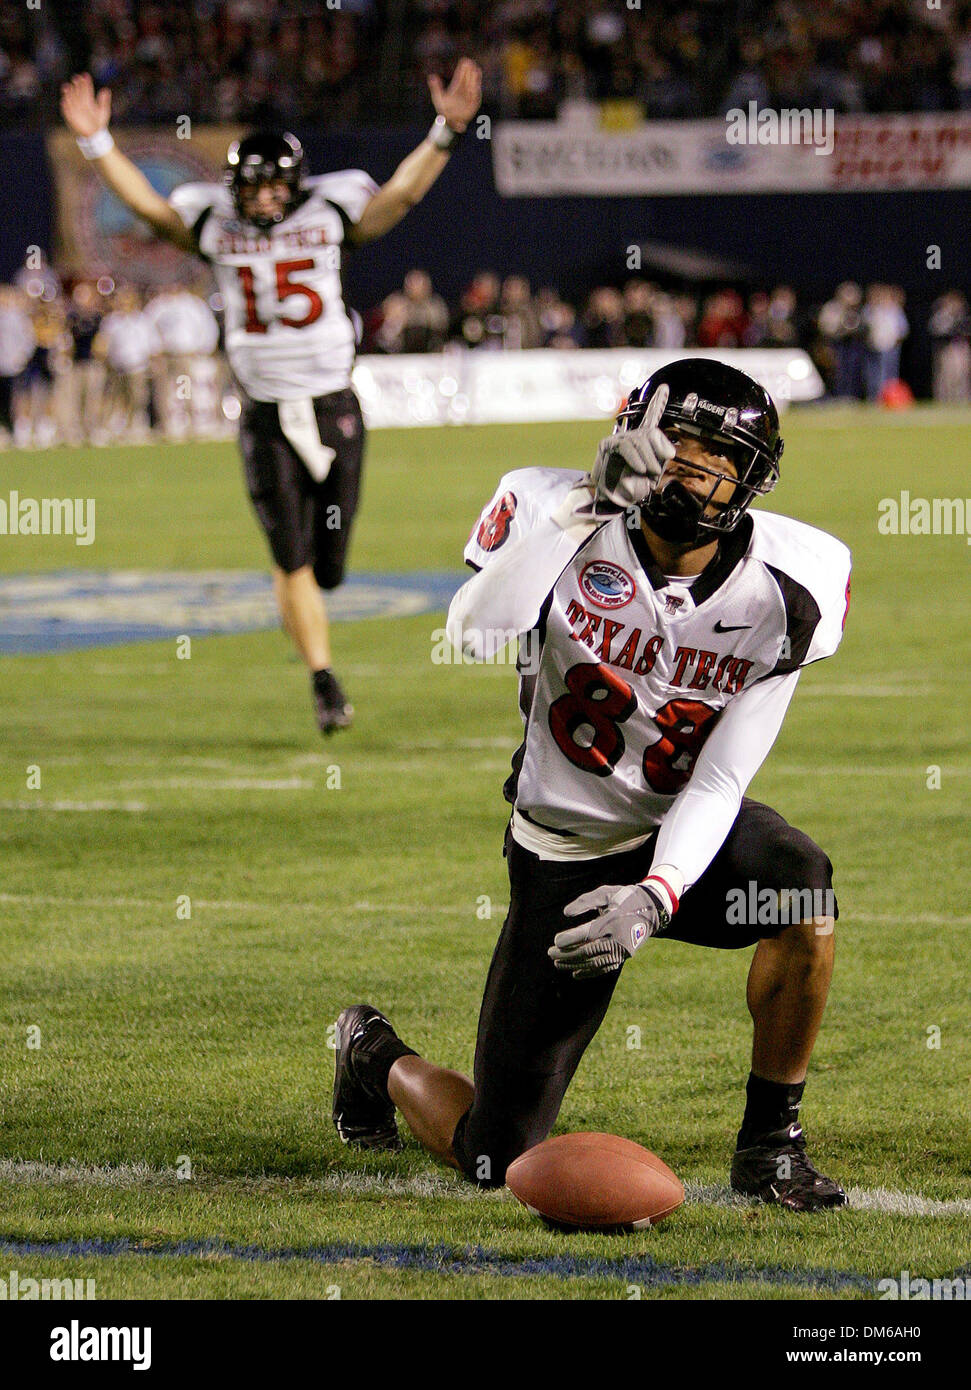 Dec 30, 2004; San Diego, CA, USA; NCAA College Football (Texas Tech 45, California 31) Texas Tech's JARRETT HICKS signals Thursday night Dec 30, 2004 in San Diego during the Holiday Bowl after catching a touchdown pass from quarterback Sonnie Cumbie. - Stock Image